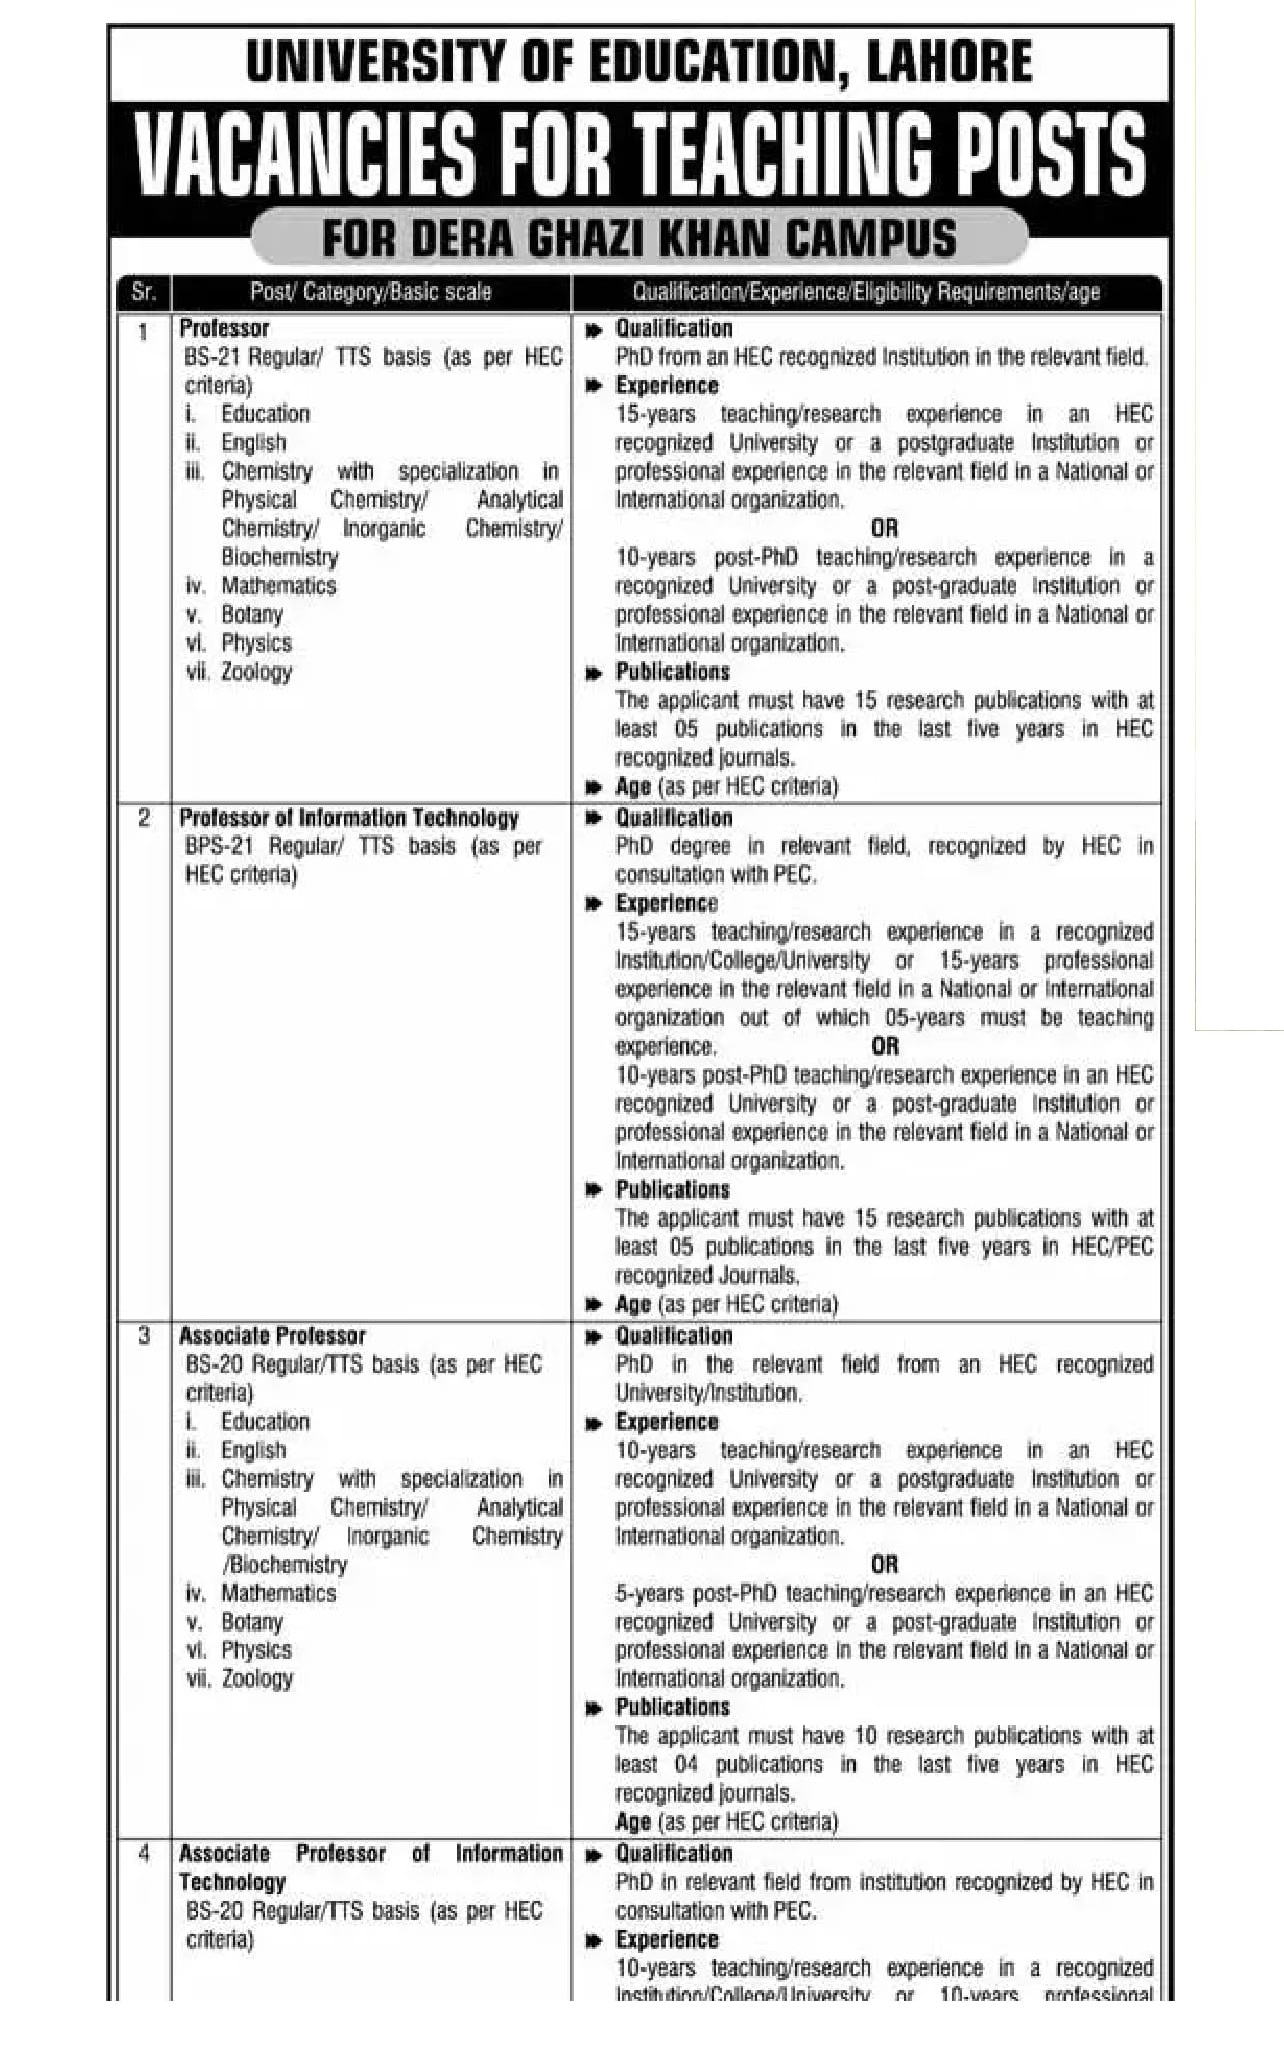 University of Education DGK Campus Teaching Jobs - Pakistan